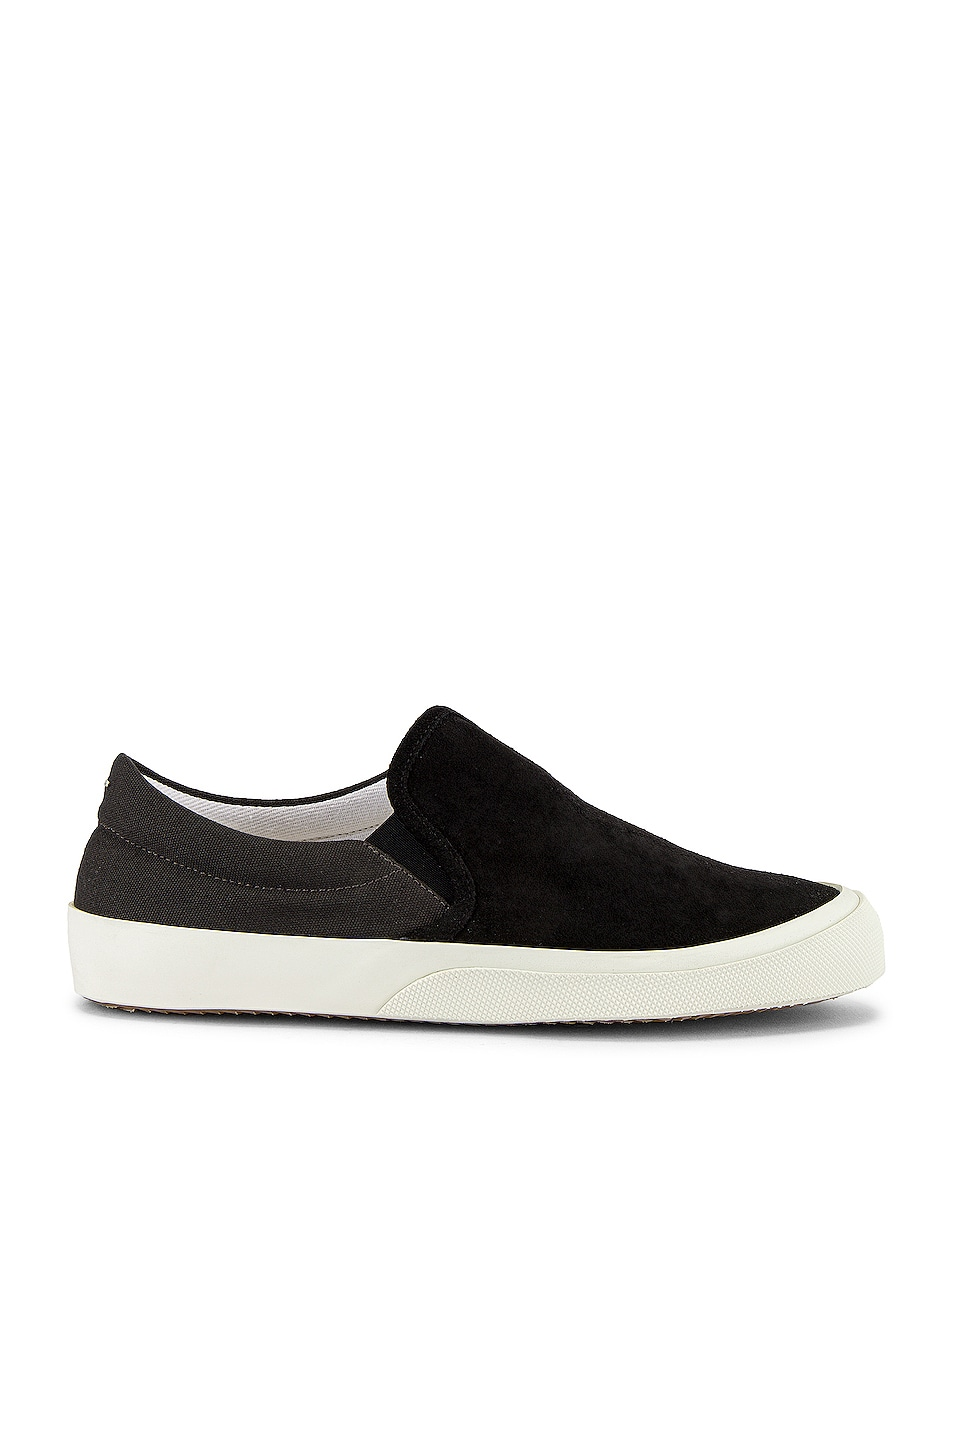 Image 2 of Maison Margiela Hurricane Slip On in Smoke 91 & Neroy